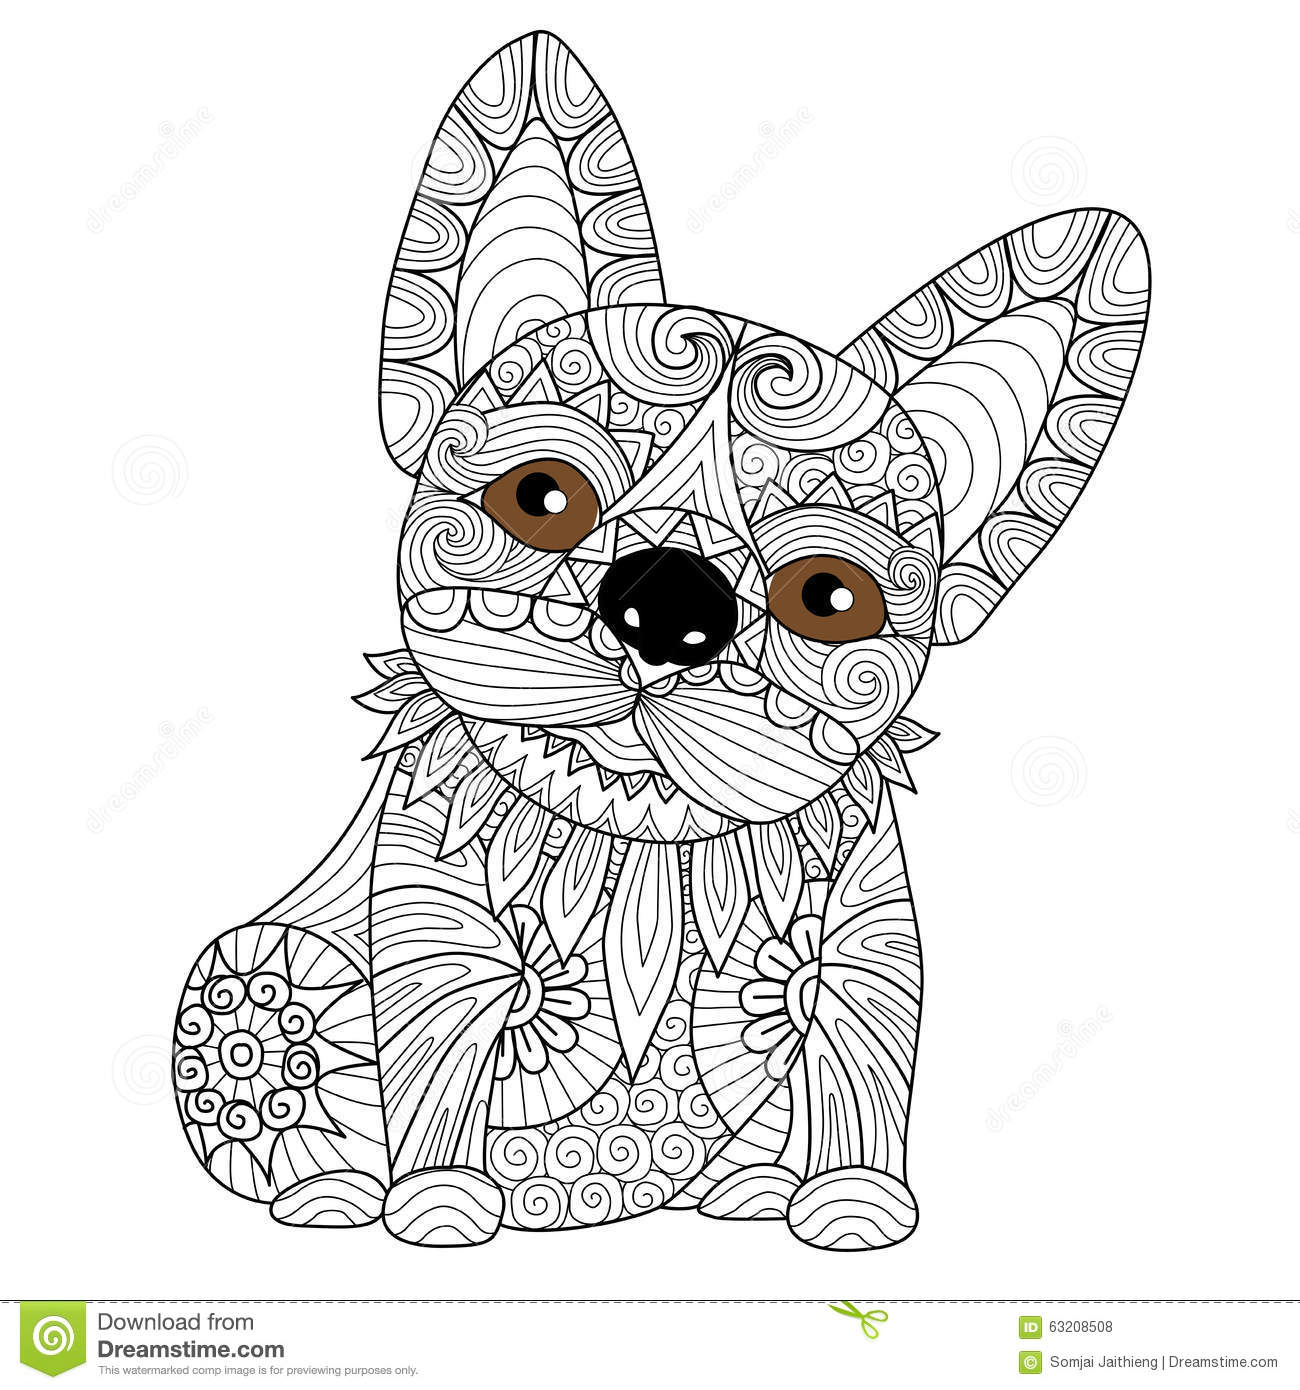 Hand Drawn Bulldog Puppy For Coloring Book Adult Royalty Free Stock Photos